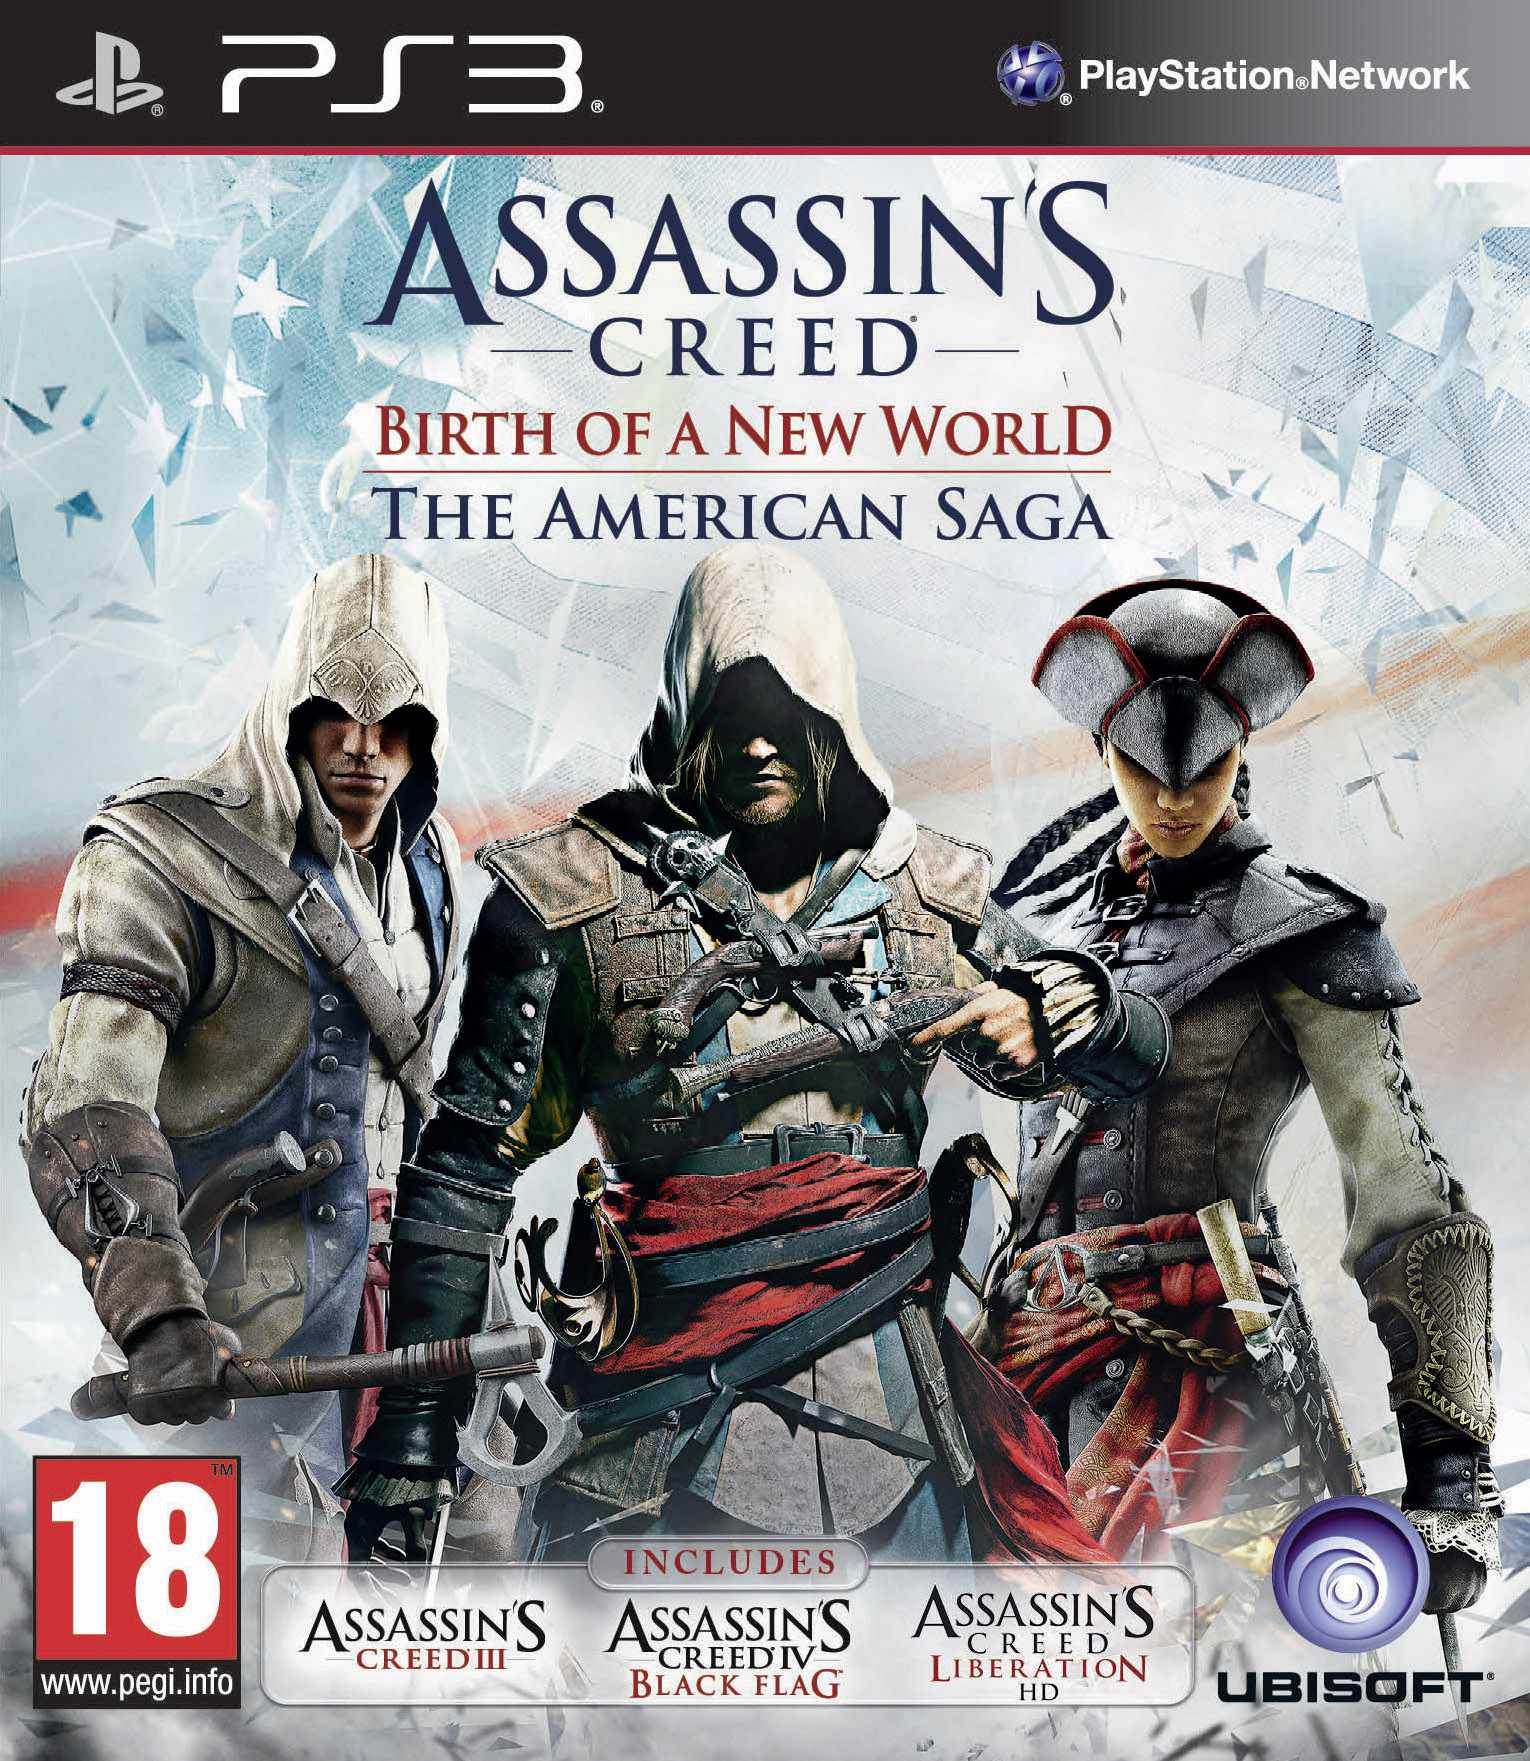 Ver AssassinS Creed Birth Of A New World The American Saga Ps